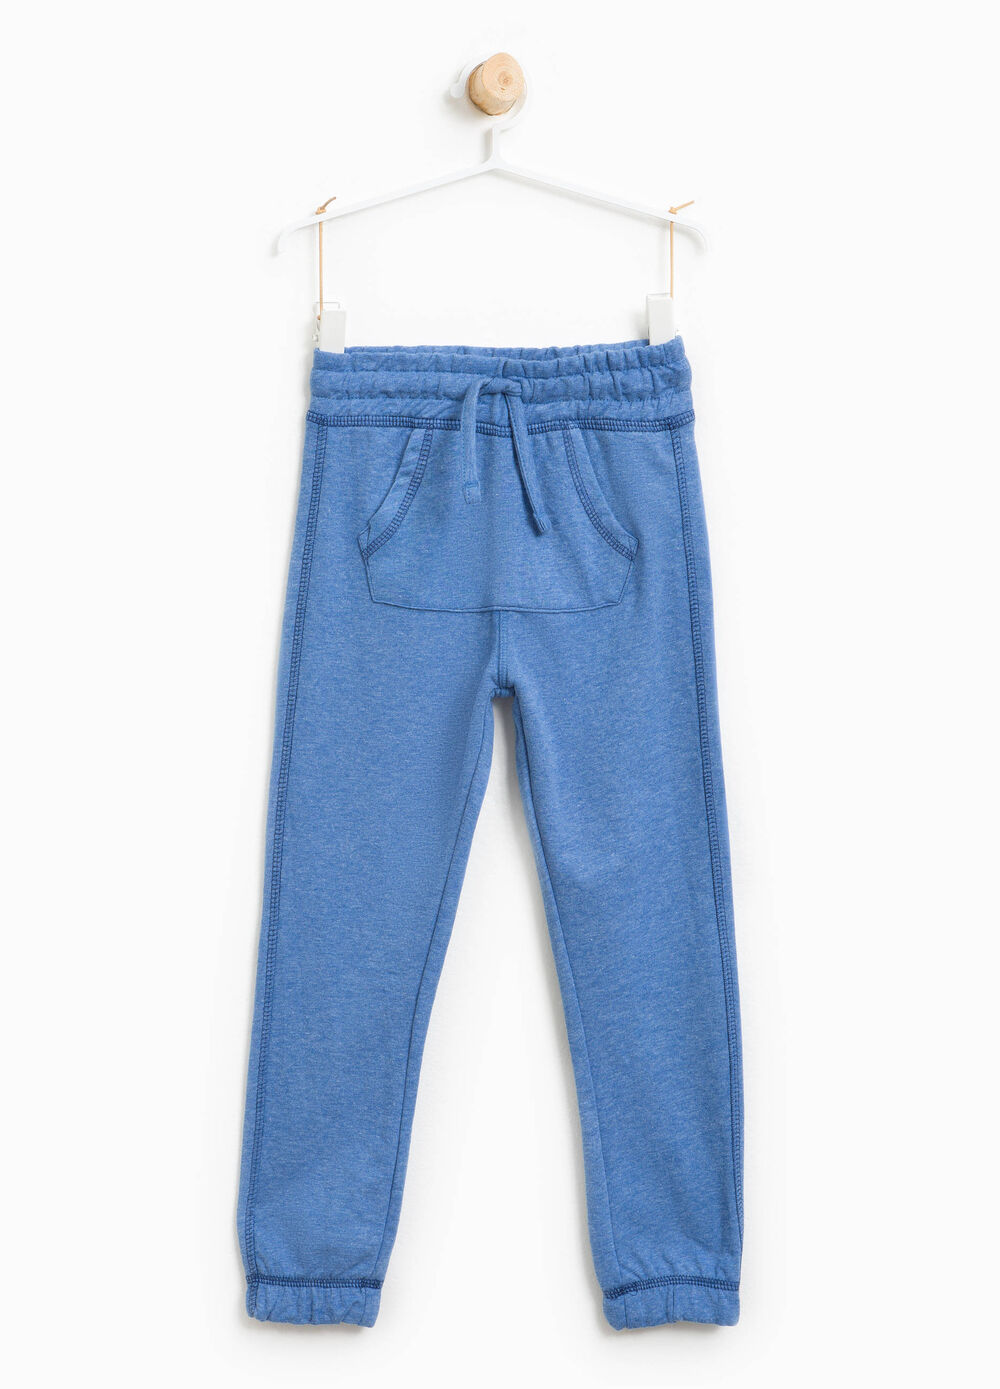 Cotton joggers with pouch pocket